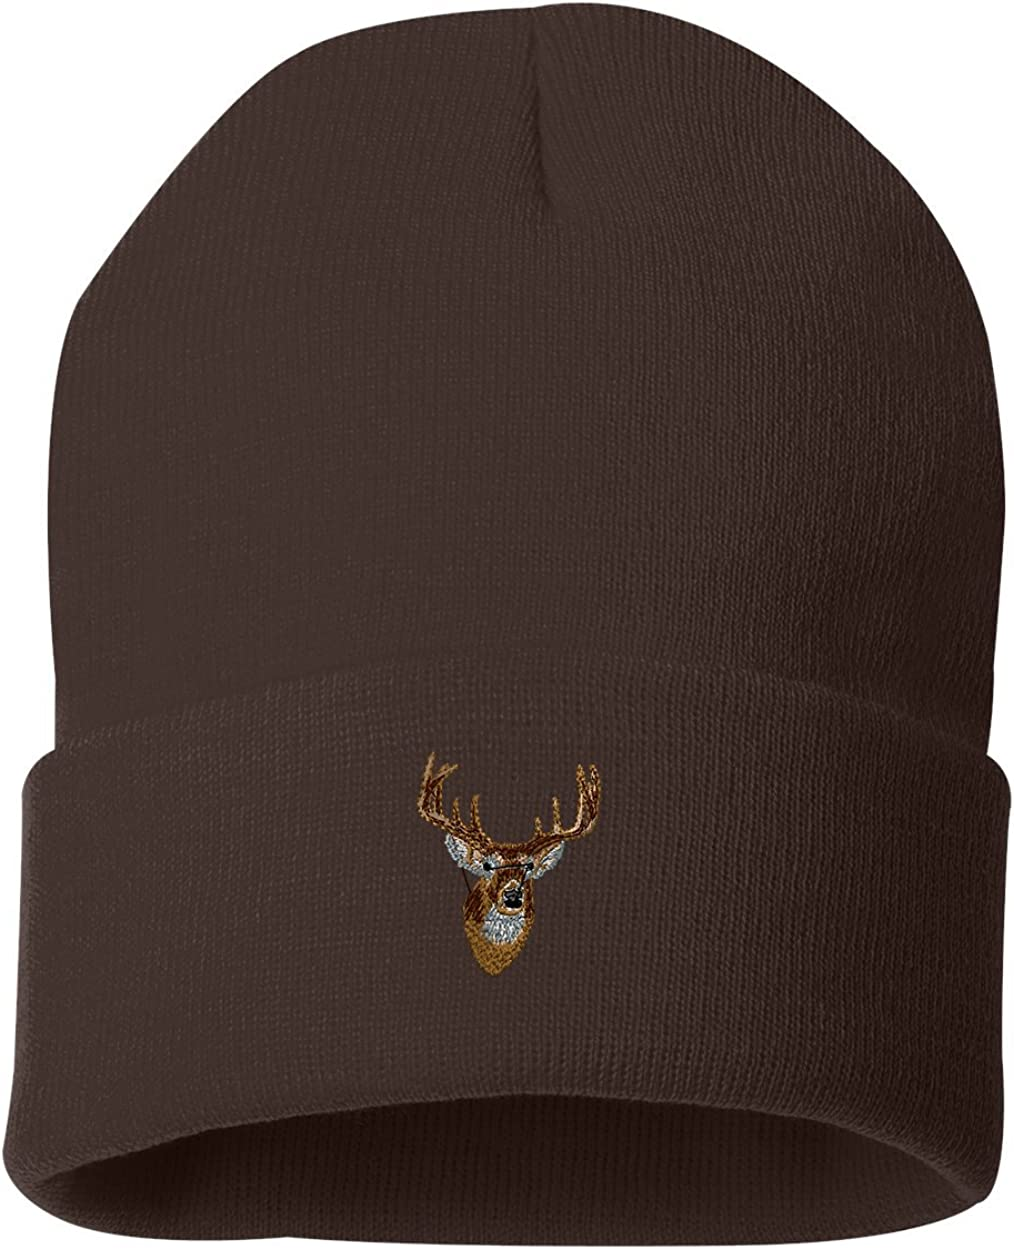 Whitetail Deer Head Custom Personalized Embroidery Embroidered Beanie